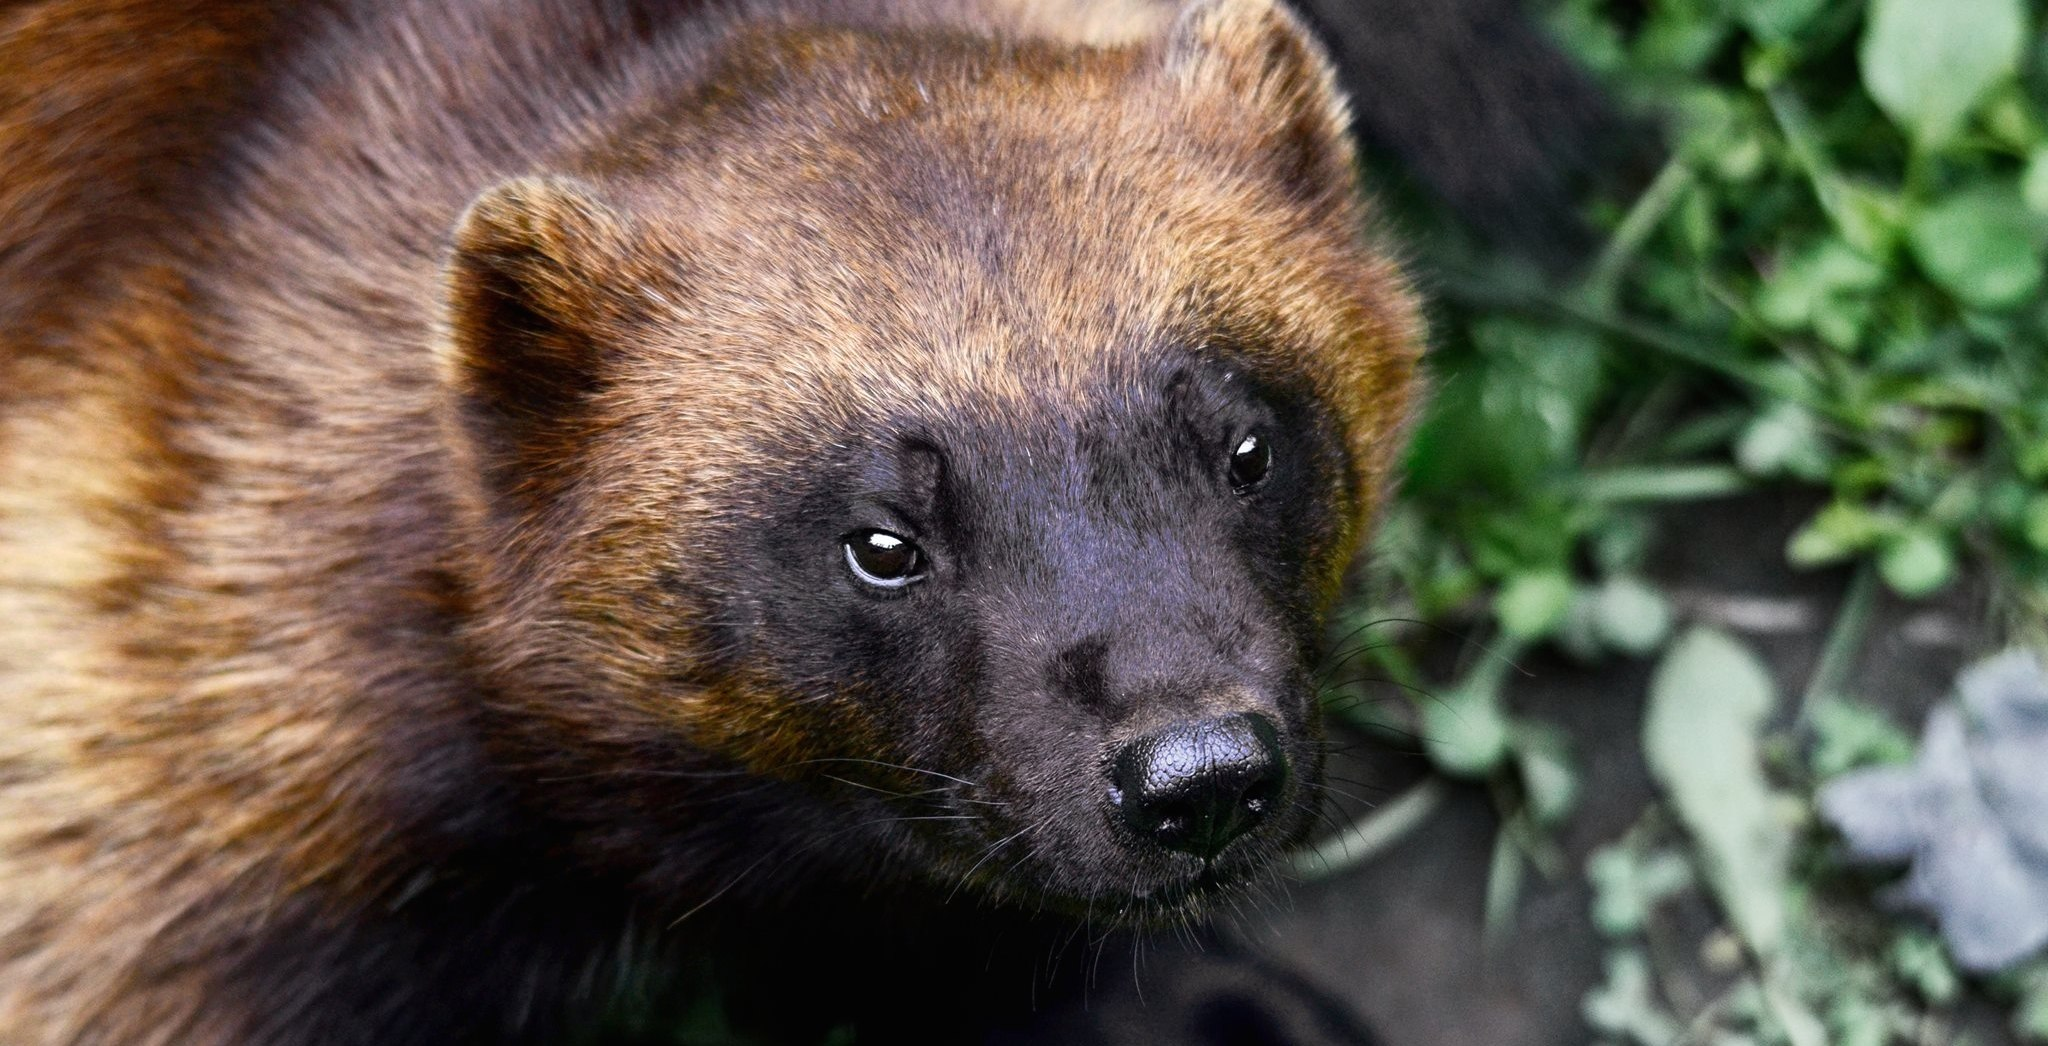 A wolverine is on the loose after escaping from a zoo in Quebec (VIDEO)